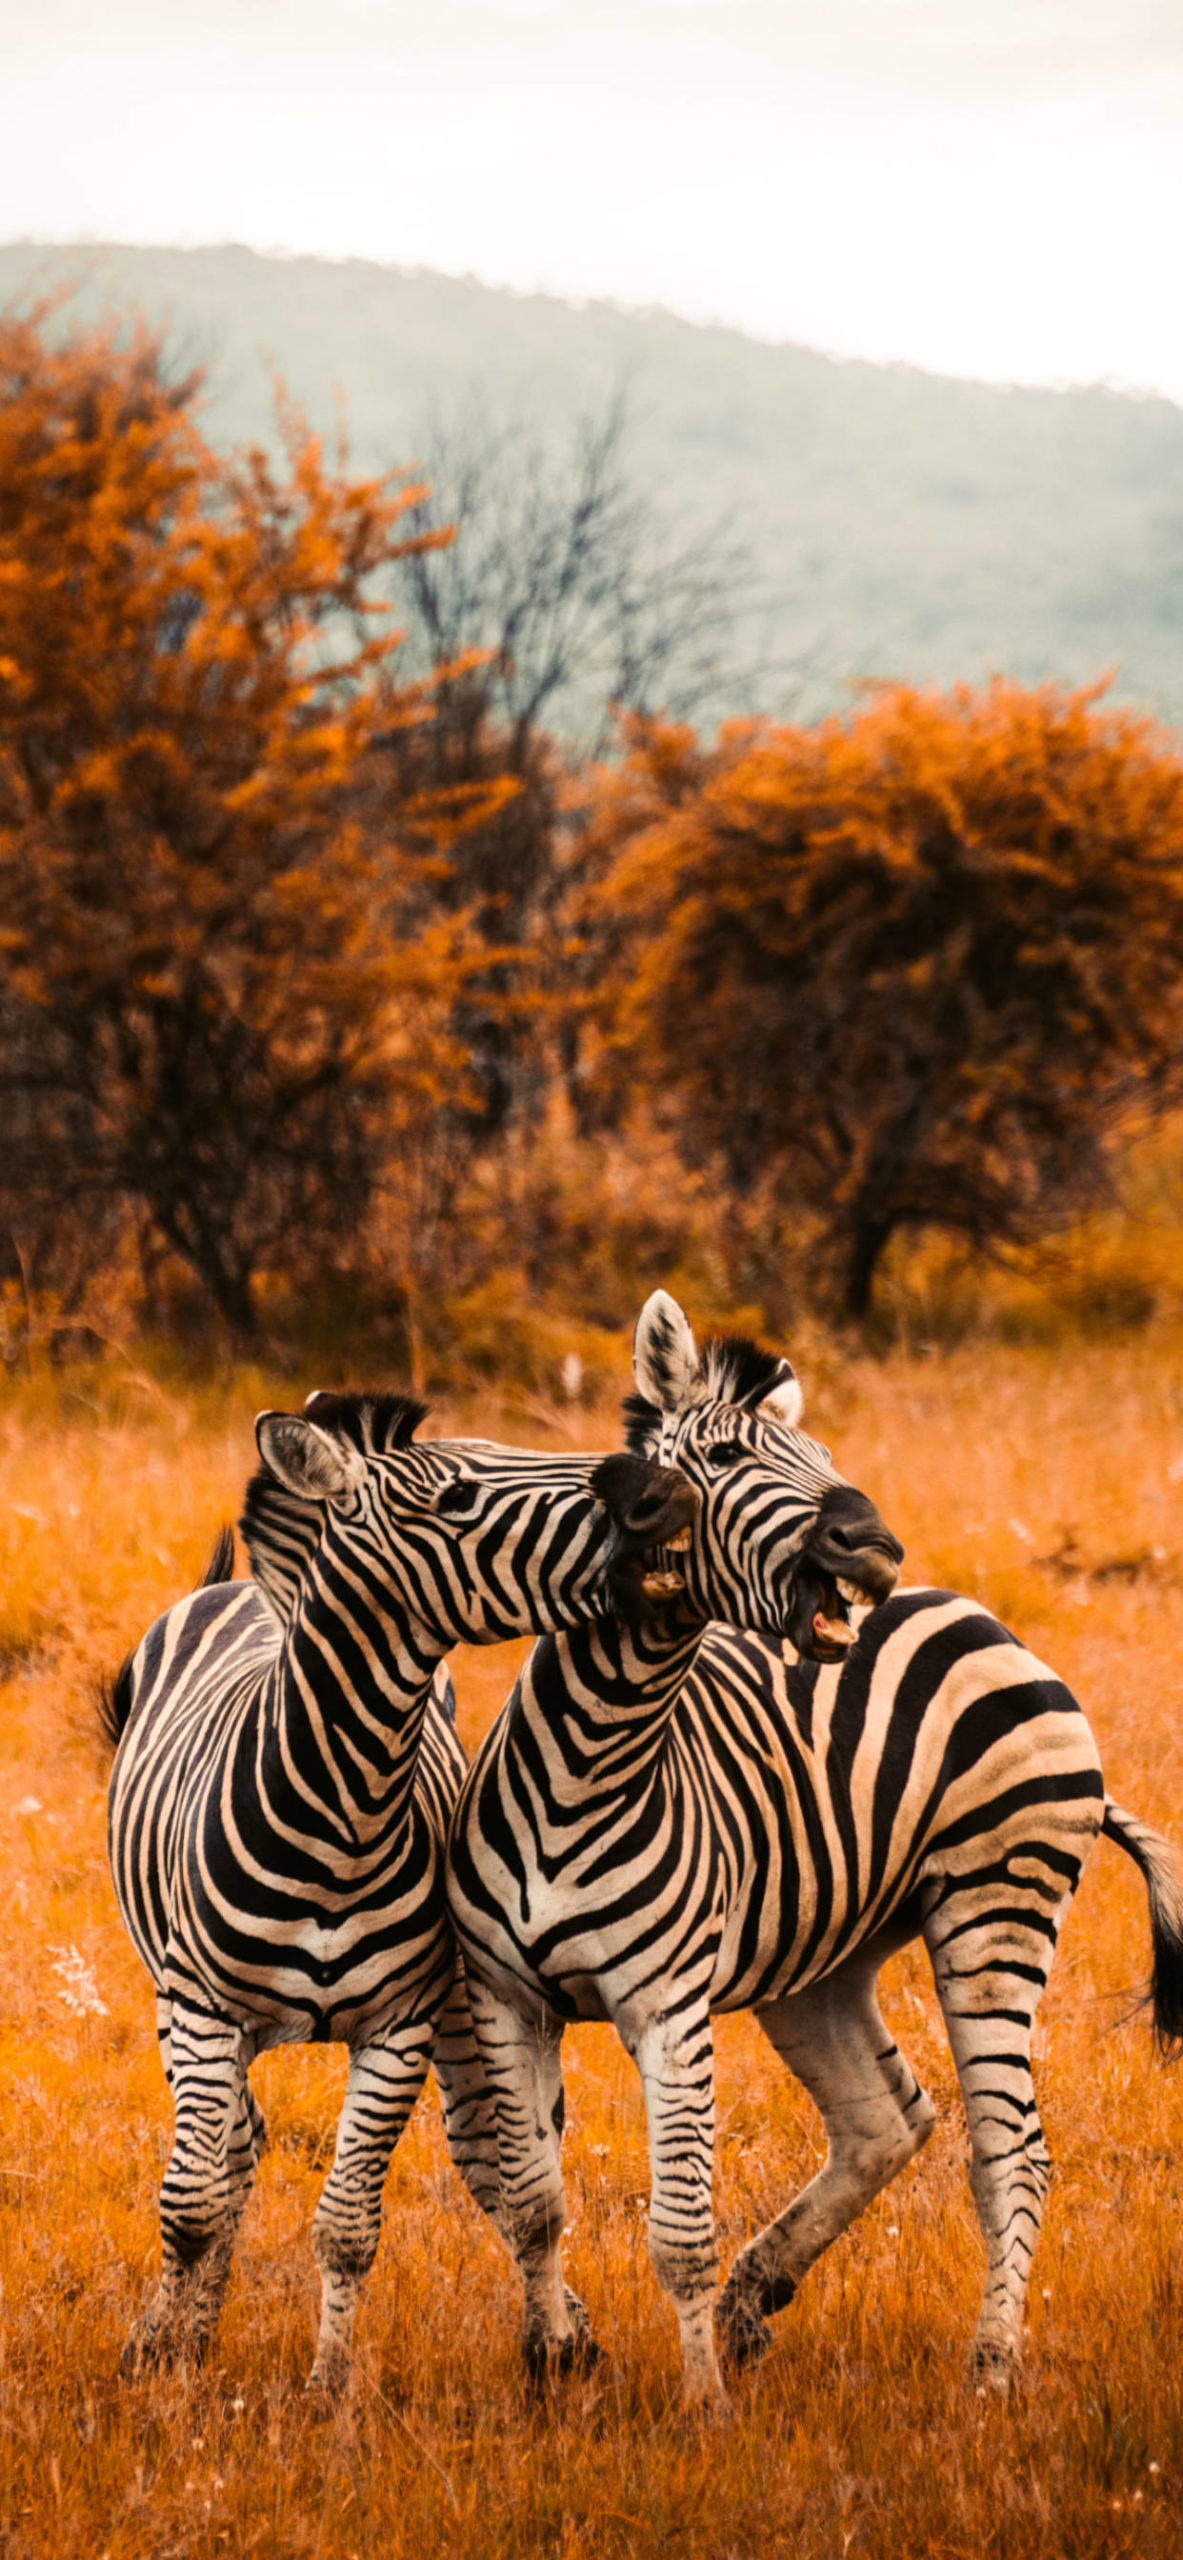 iPhone wallpapers south africa zebra scaled South Africa